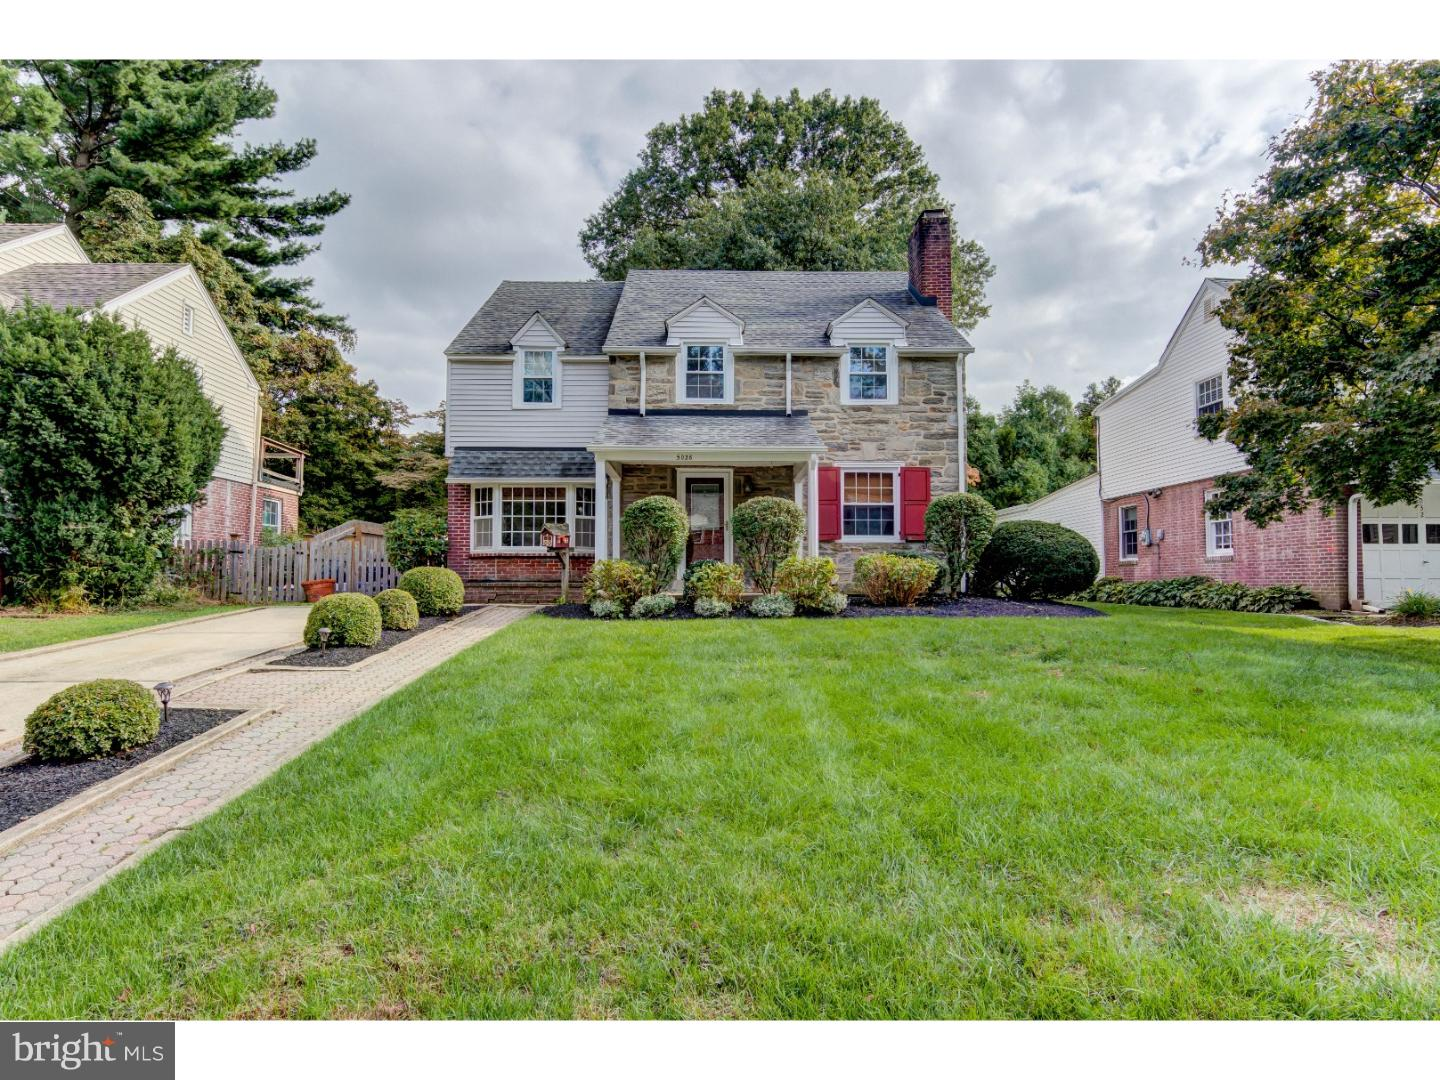 5028 Marvine Avenue Drexel Hill, PA 19026